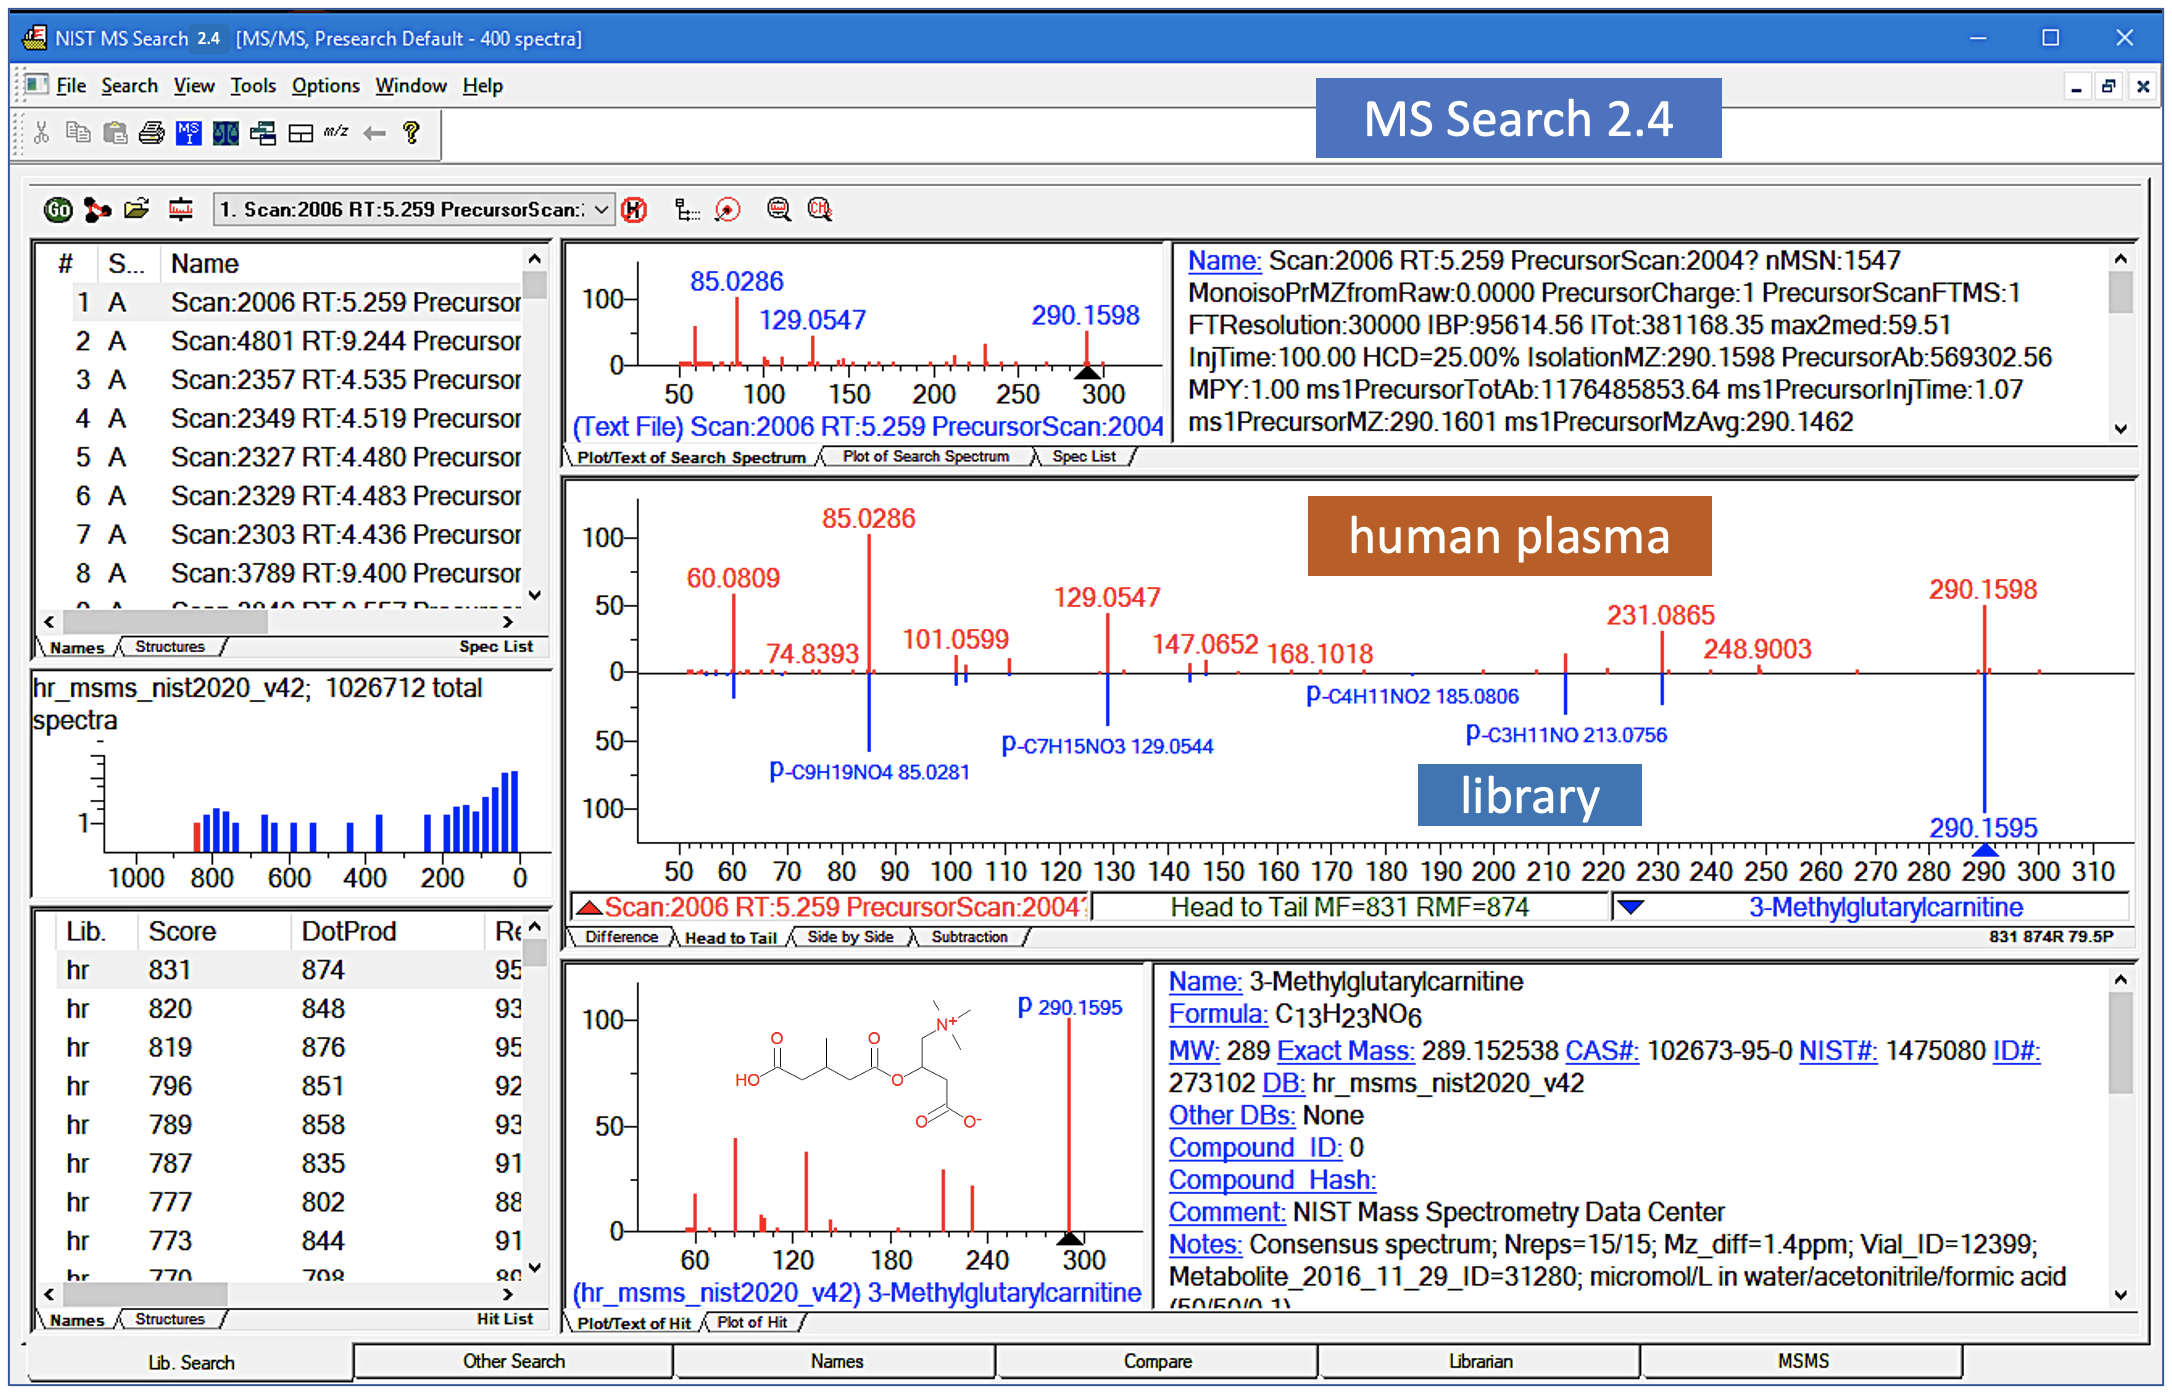 A screenshot of the MS Search interface